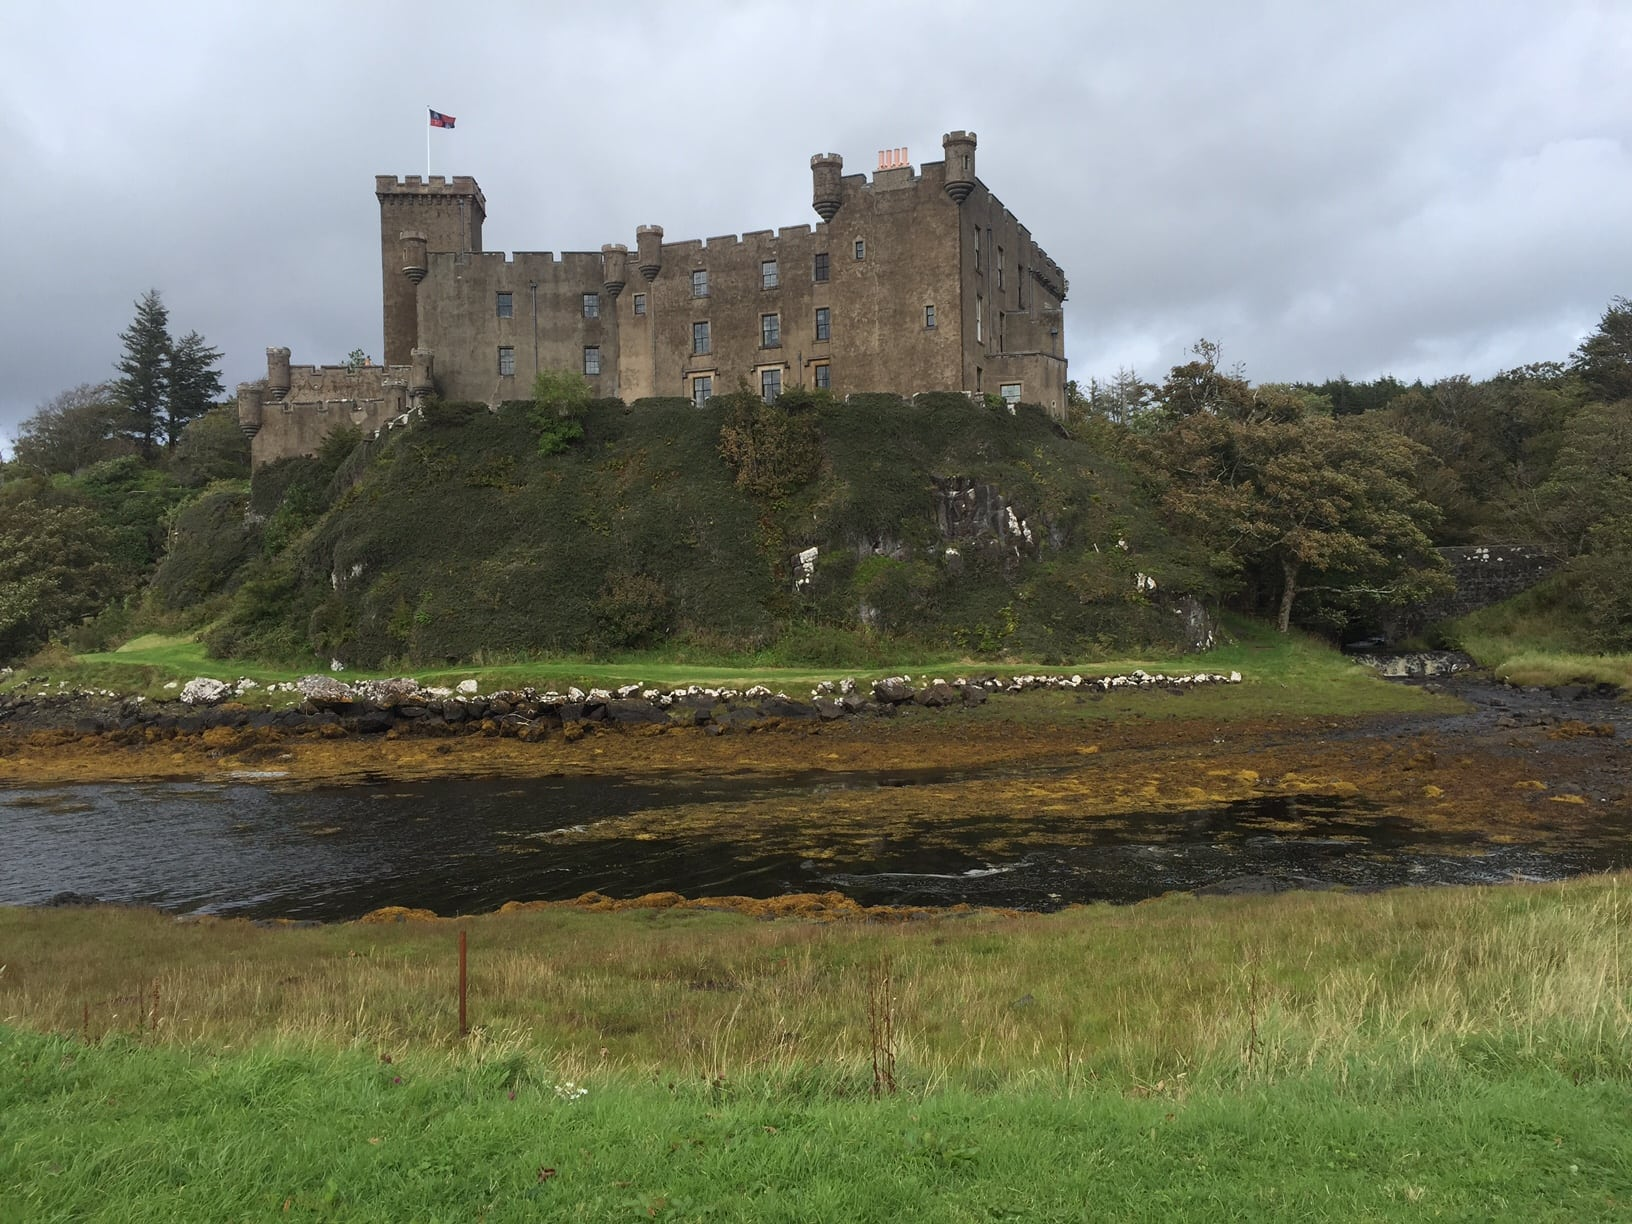 Another view of Dunvegan Castle.